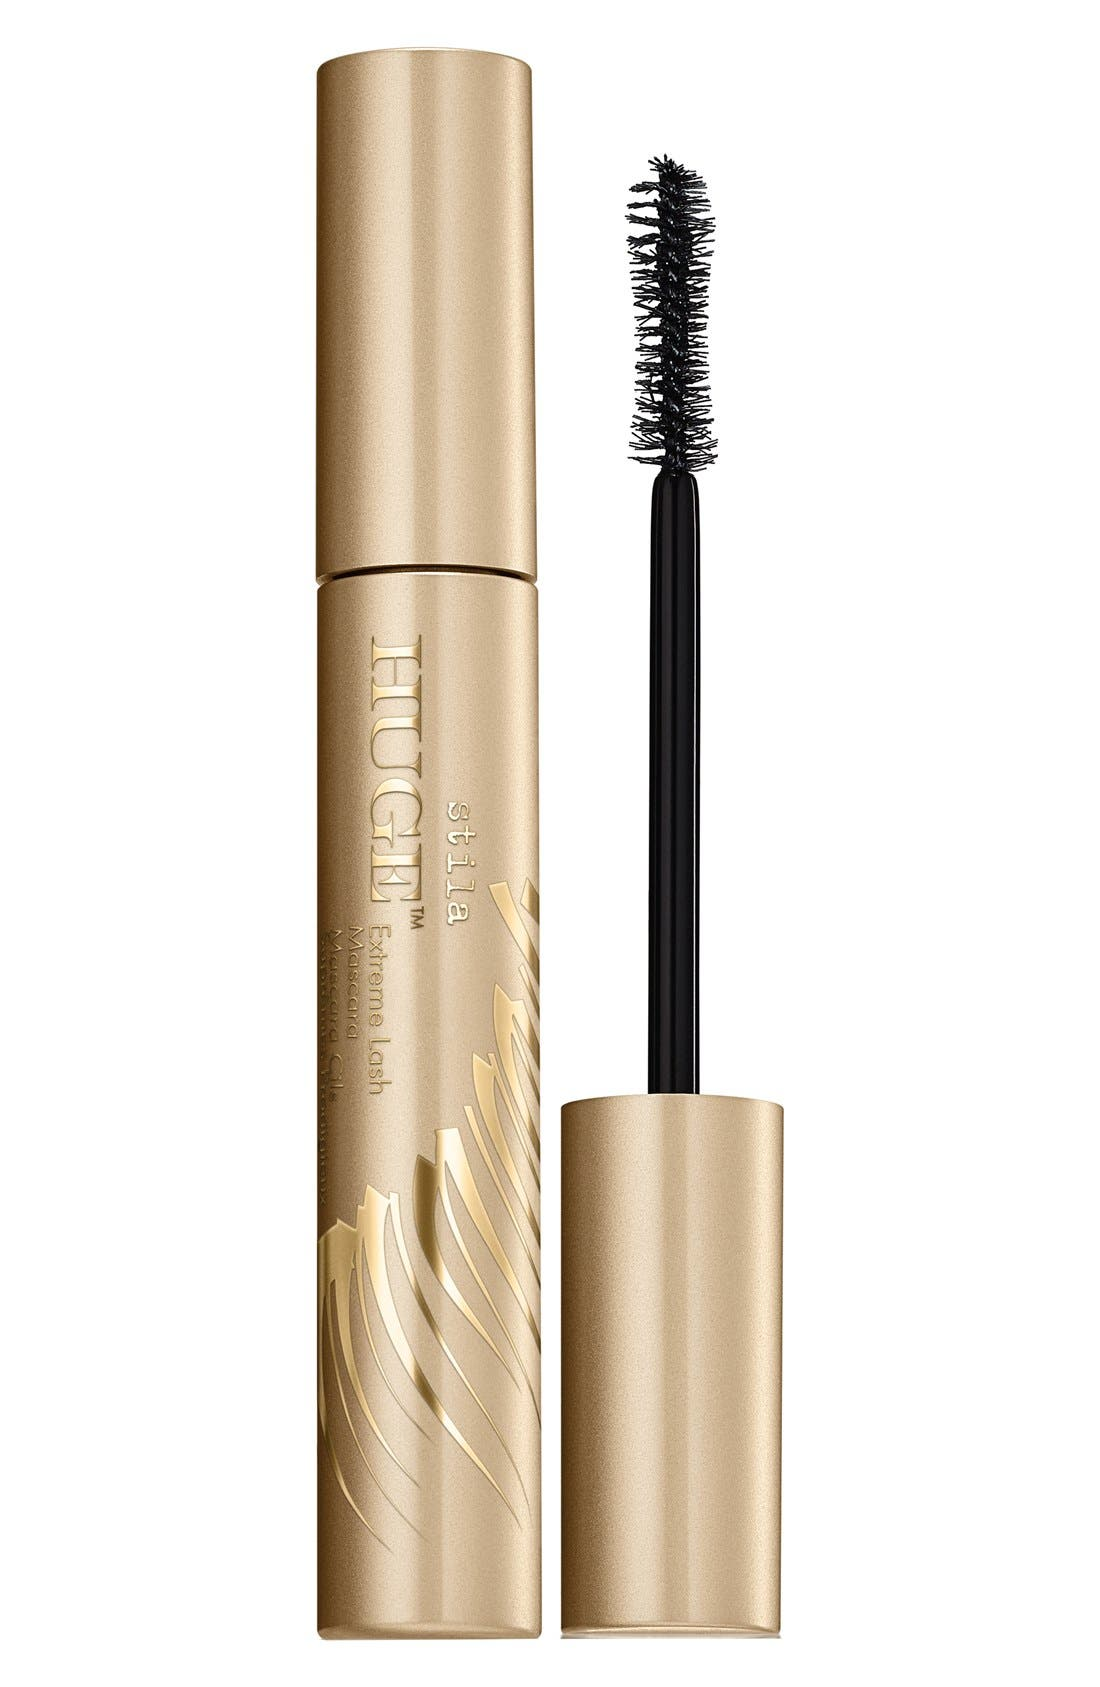 Image of Stila Huge Extreme Mascara, 0.44 fl oz